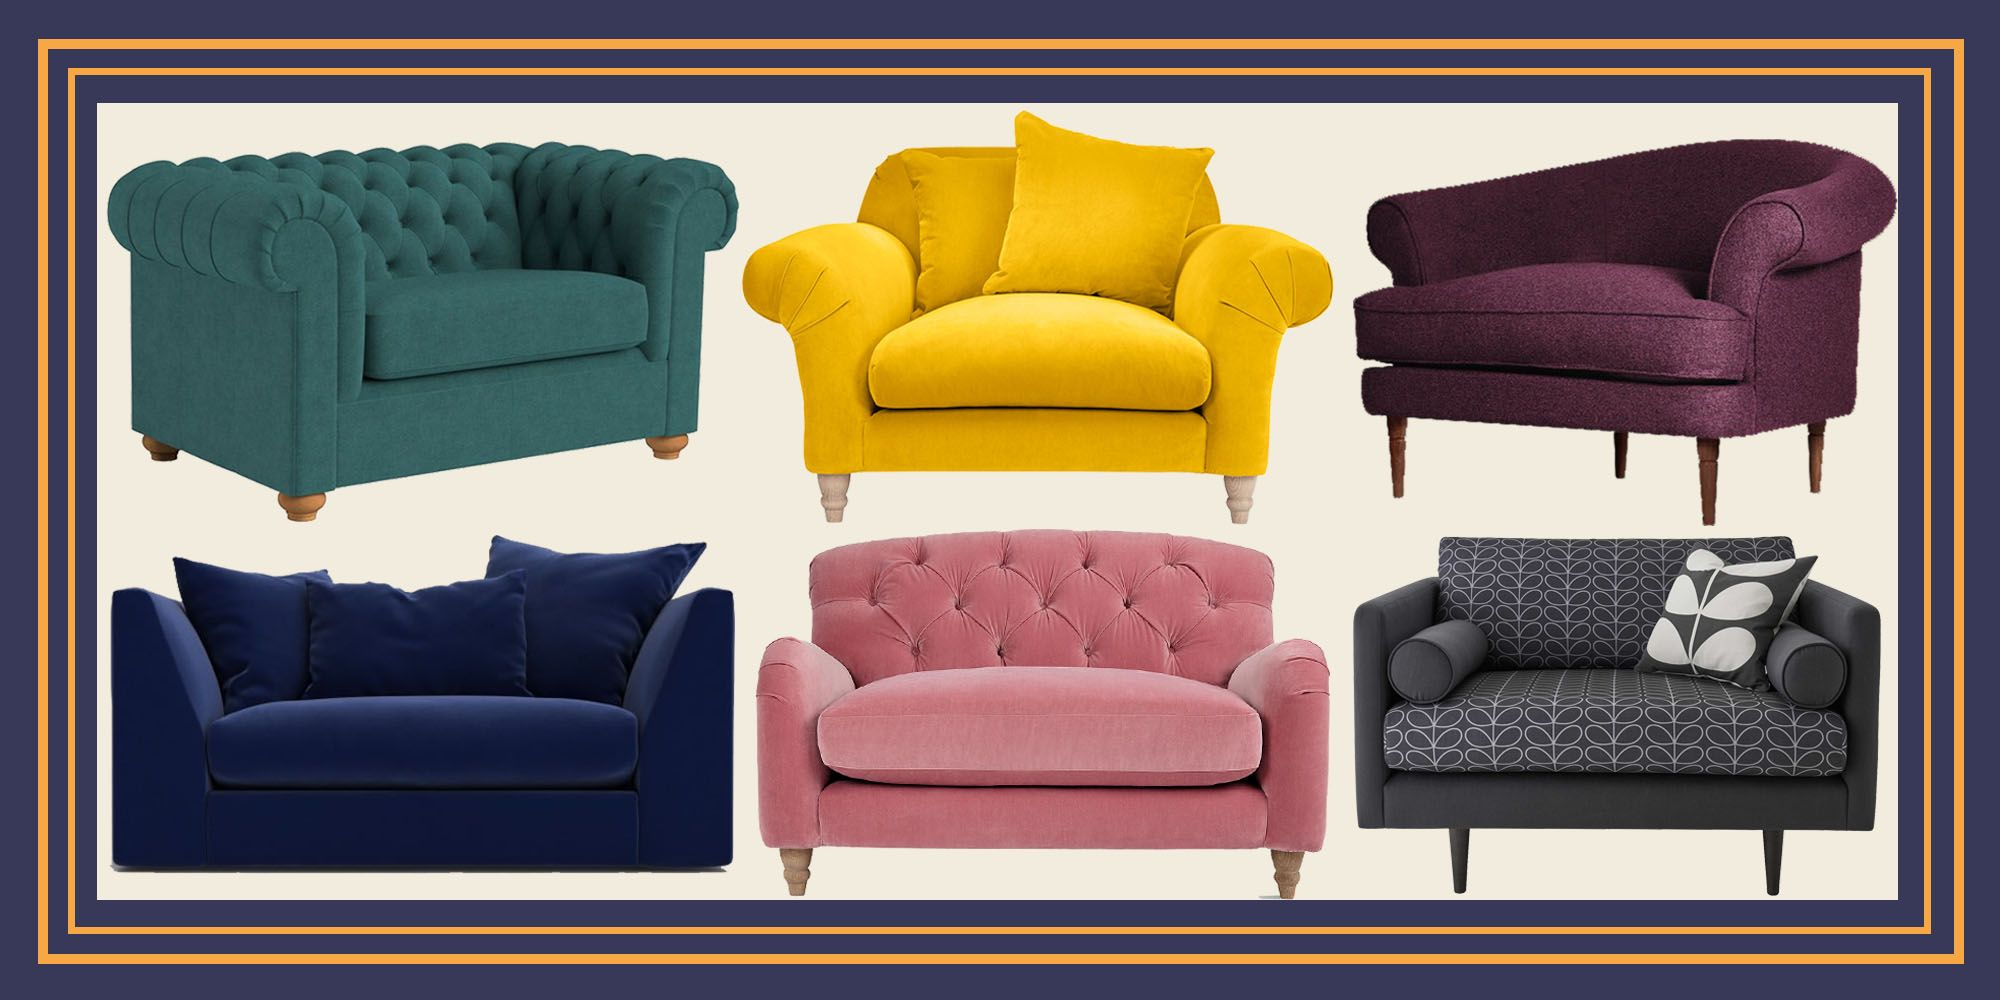 Gorgeous Designs To Recline In.